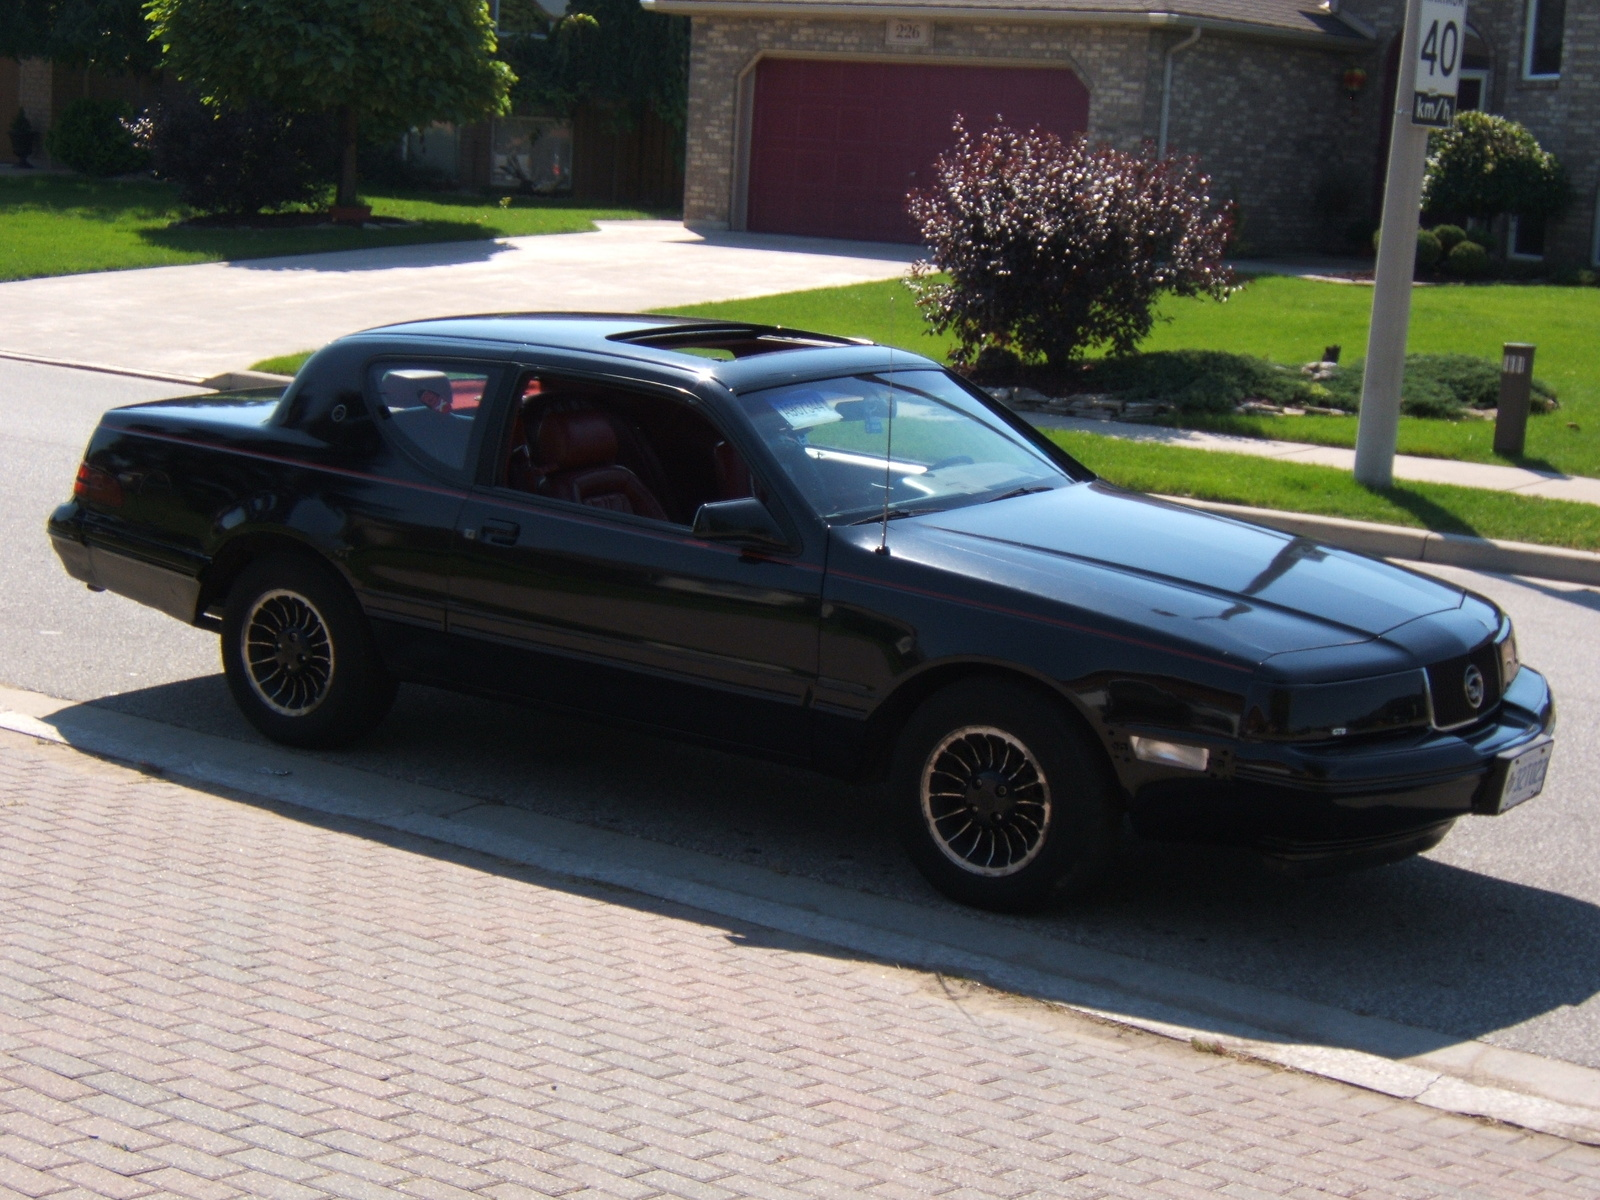 1988 Mercury Cougar picture